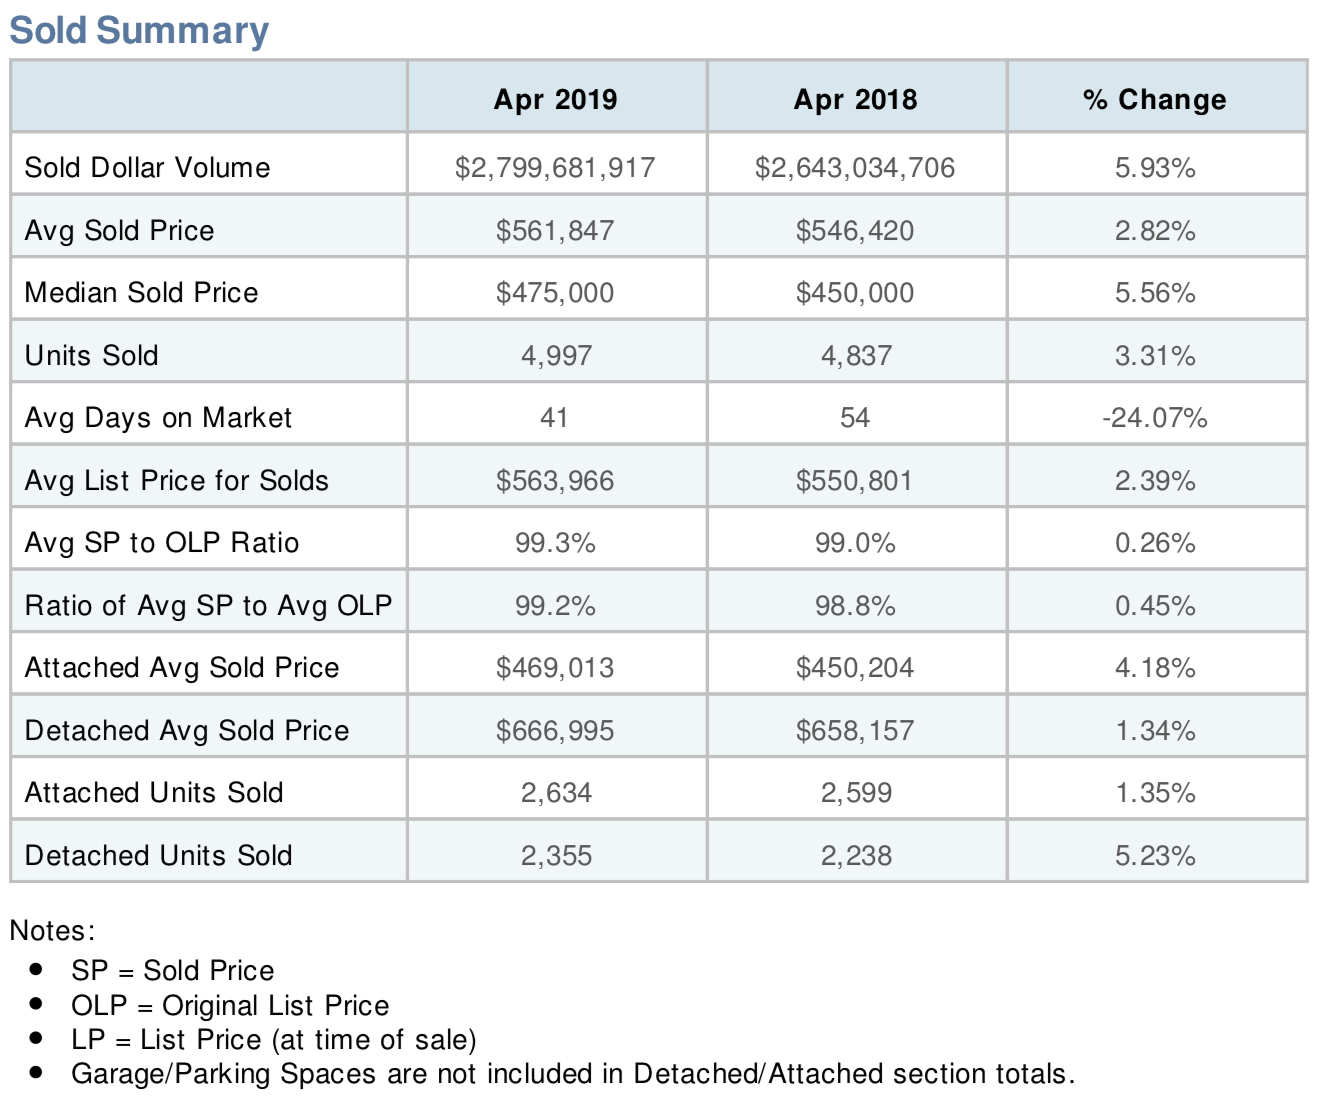 DC Housing Market Hit Record High Prices in April